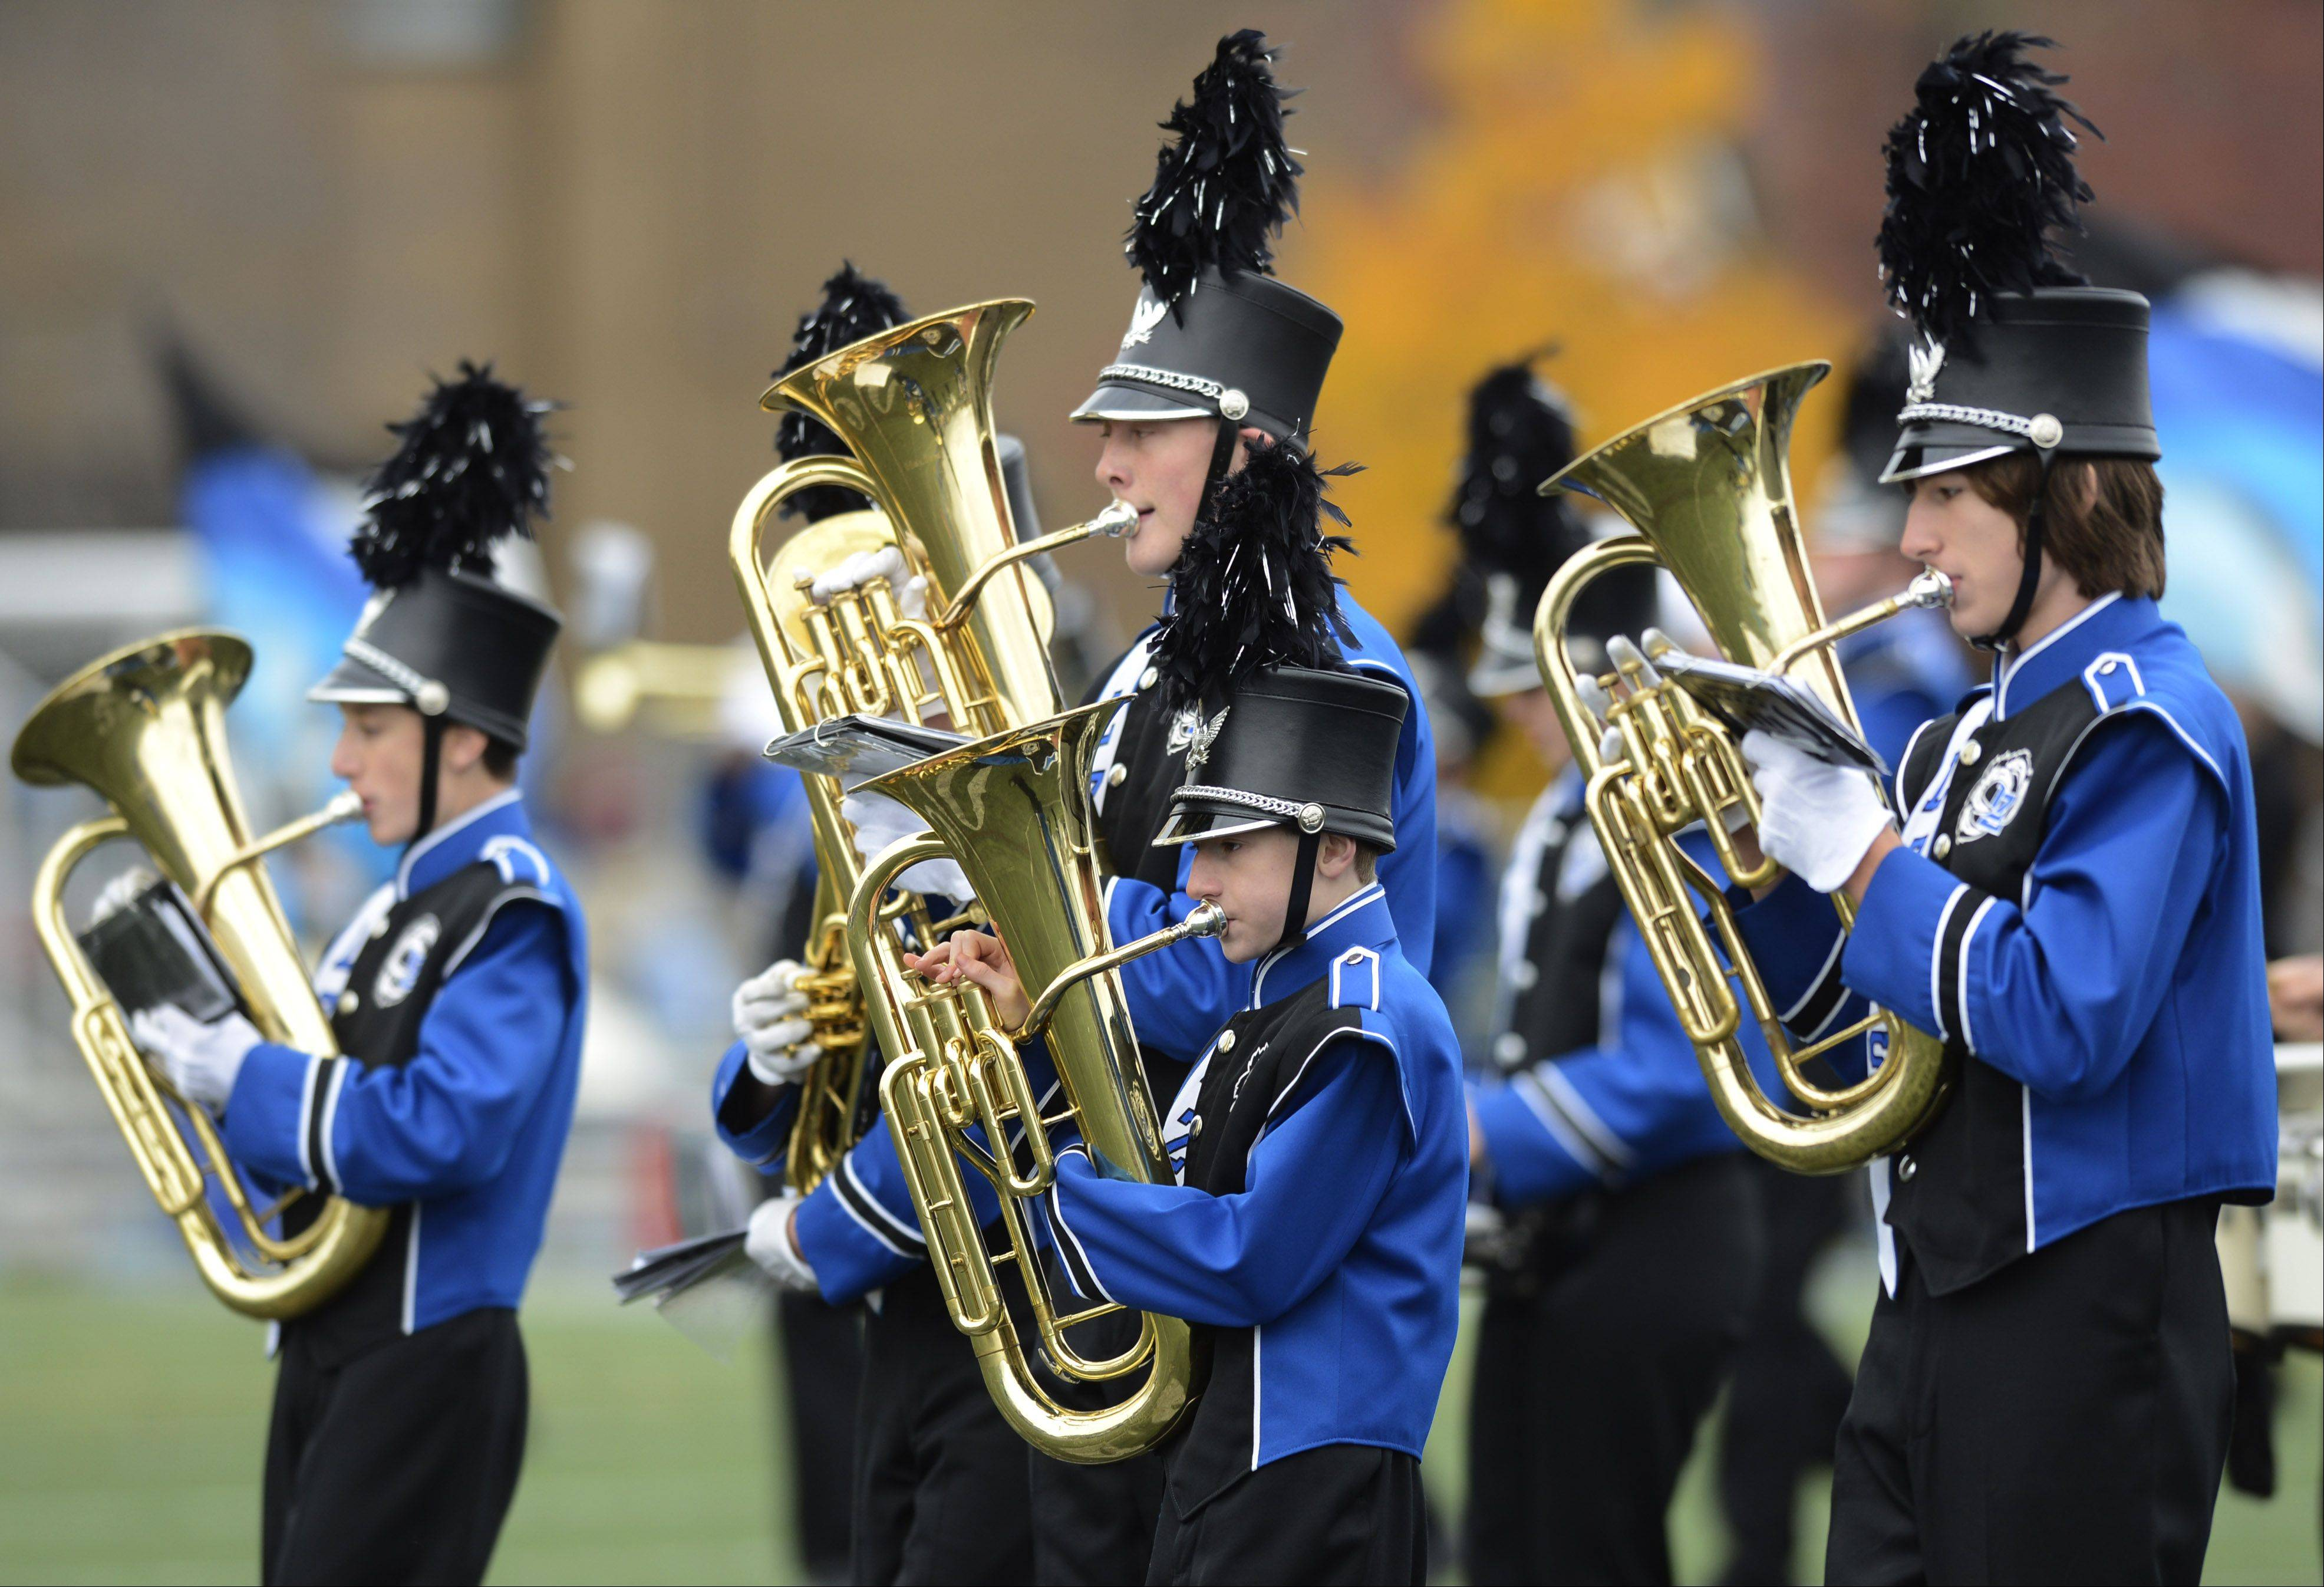 JOE LEWNARD/jlewnard@dailyherald.com  Lake Zurich High School's band performed in a November home football game. Band members and chaperones whose return home from a performance in Madrid, Spain was delayed by weather are on the final leg of their journey.